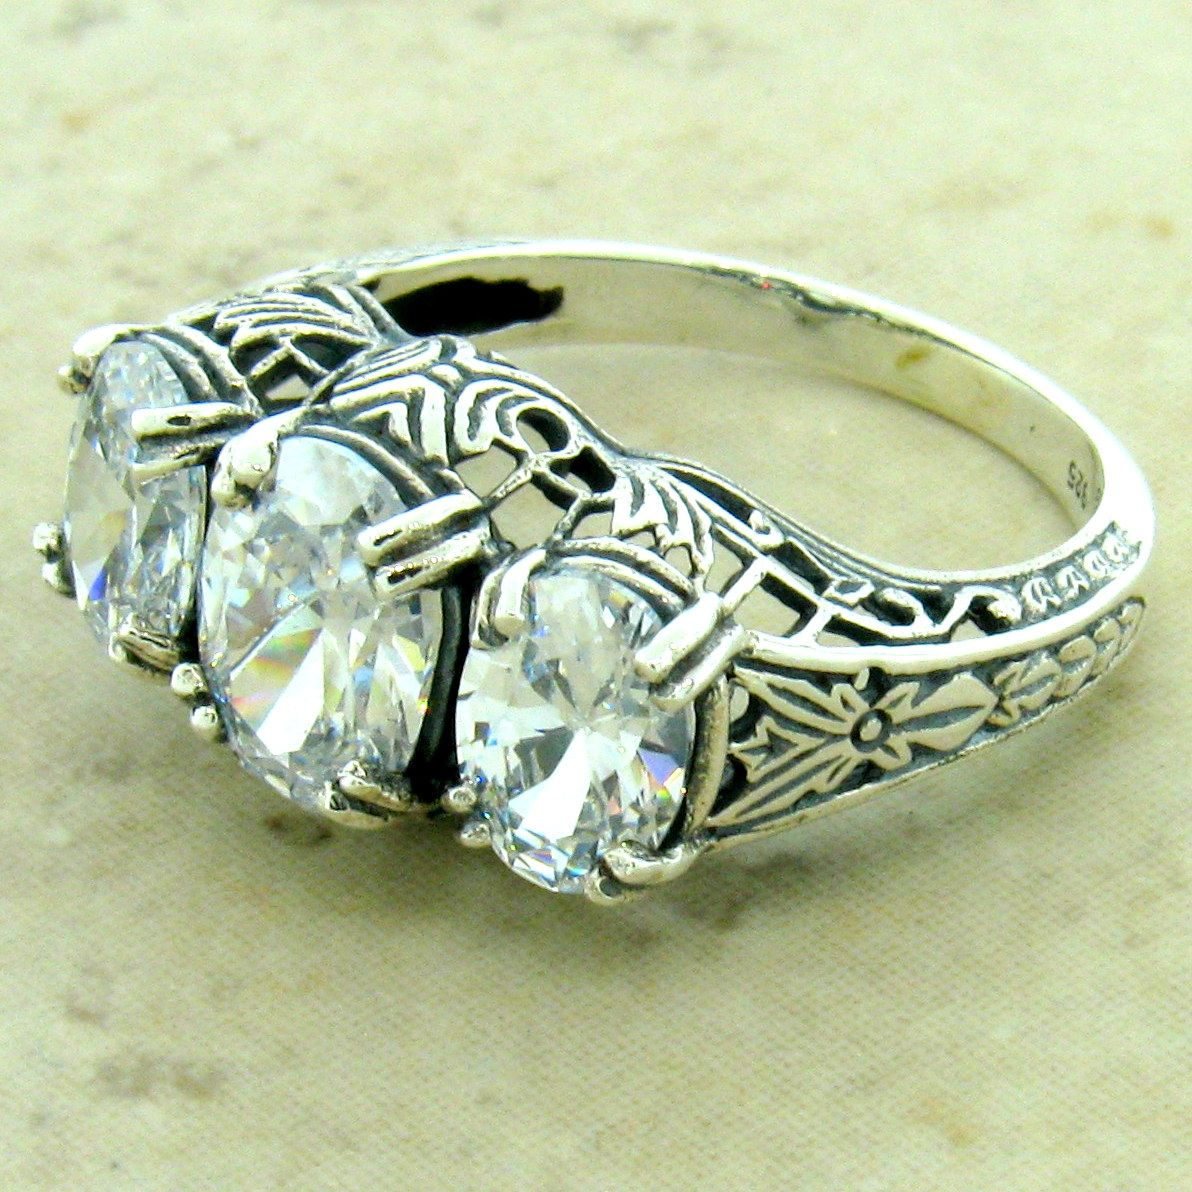 ART DECO 925 STERLING SILVER 1.79 CTTW ANTIQUE STYLE CZ RING SIZE 9 #1151